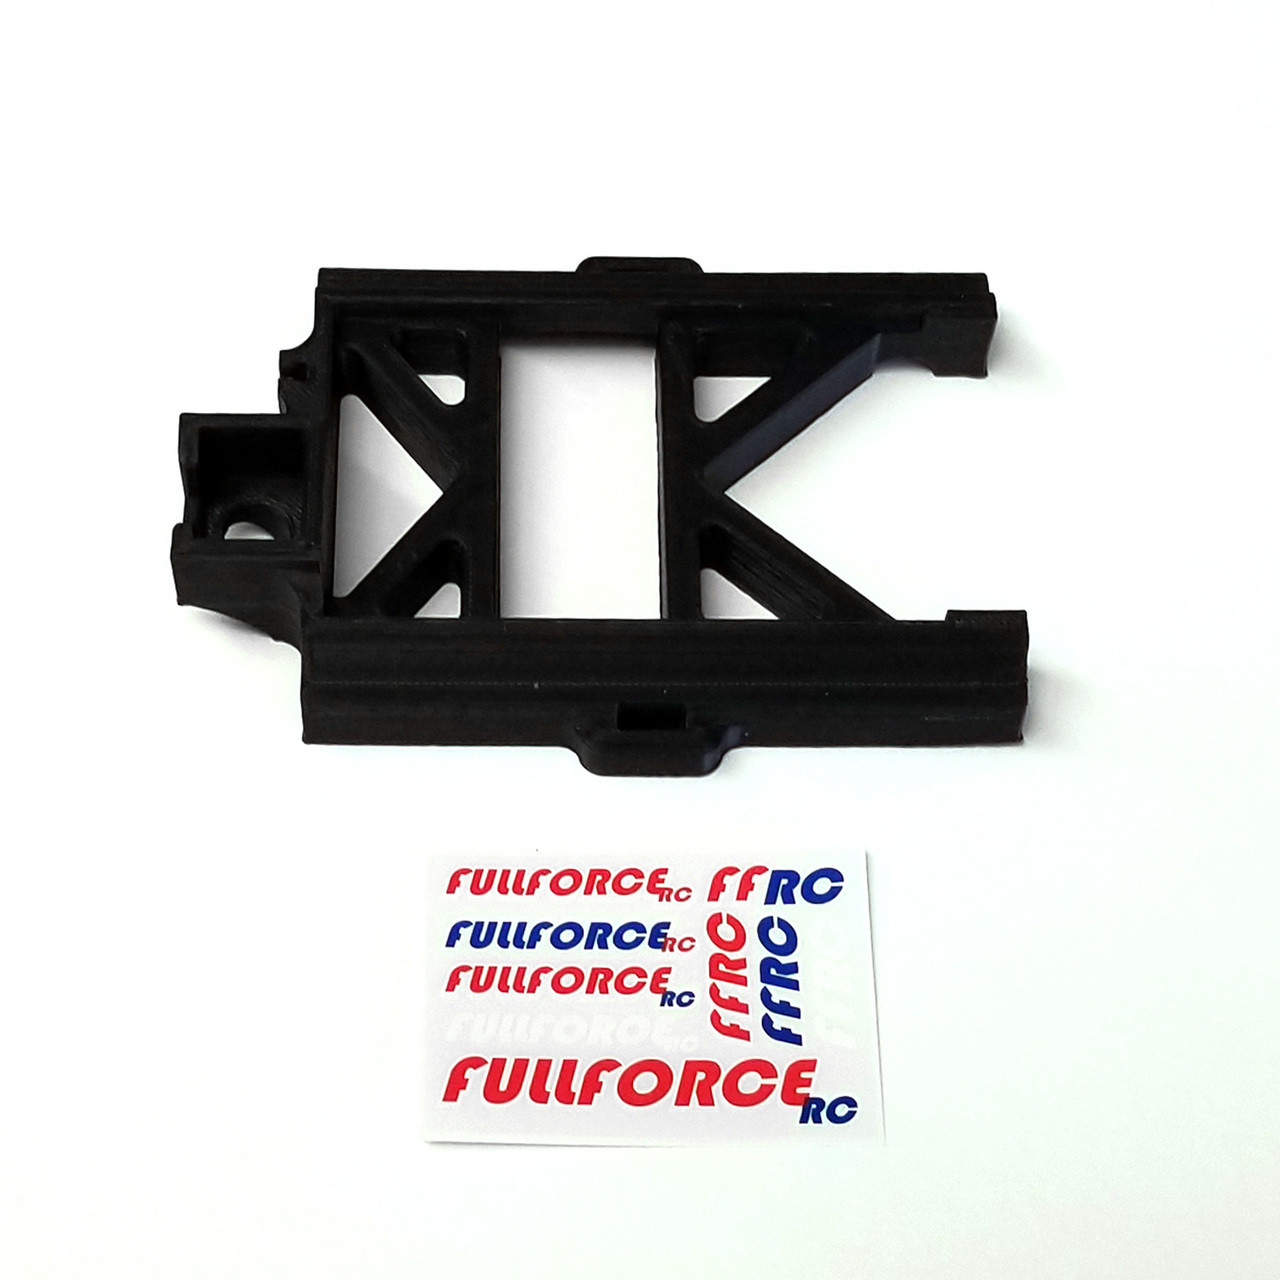 Black MAX5 speed control mount for your Traxxas X-MAXX.